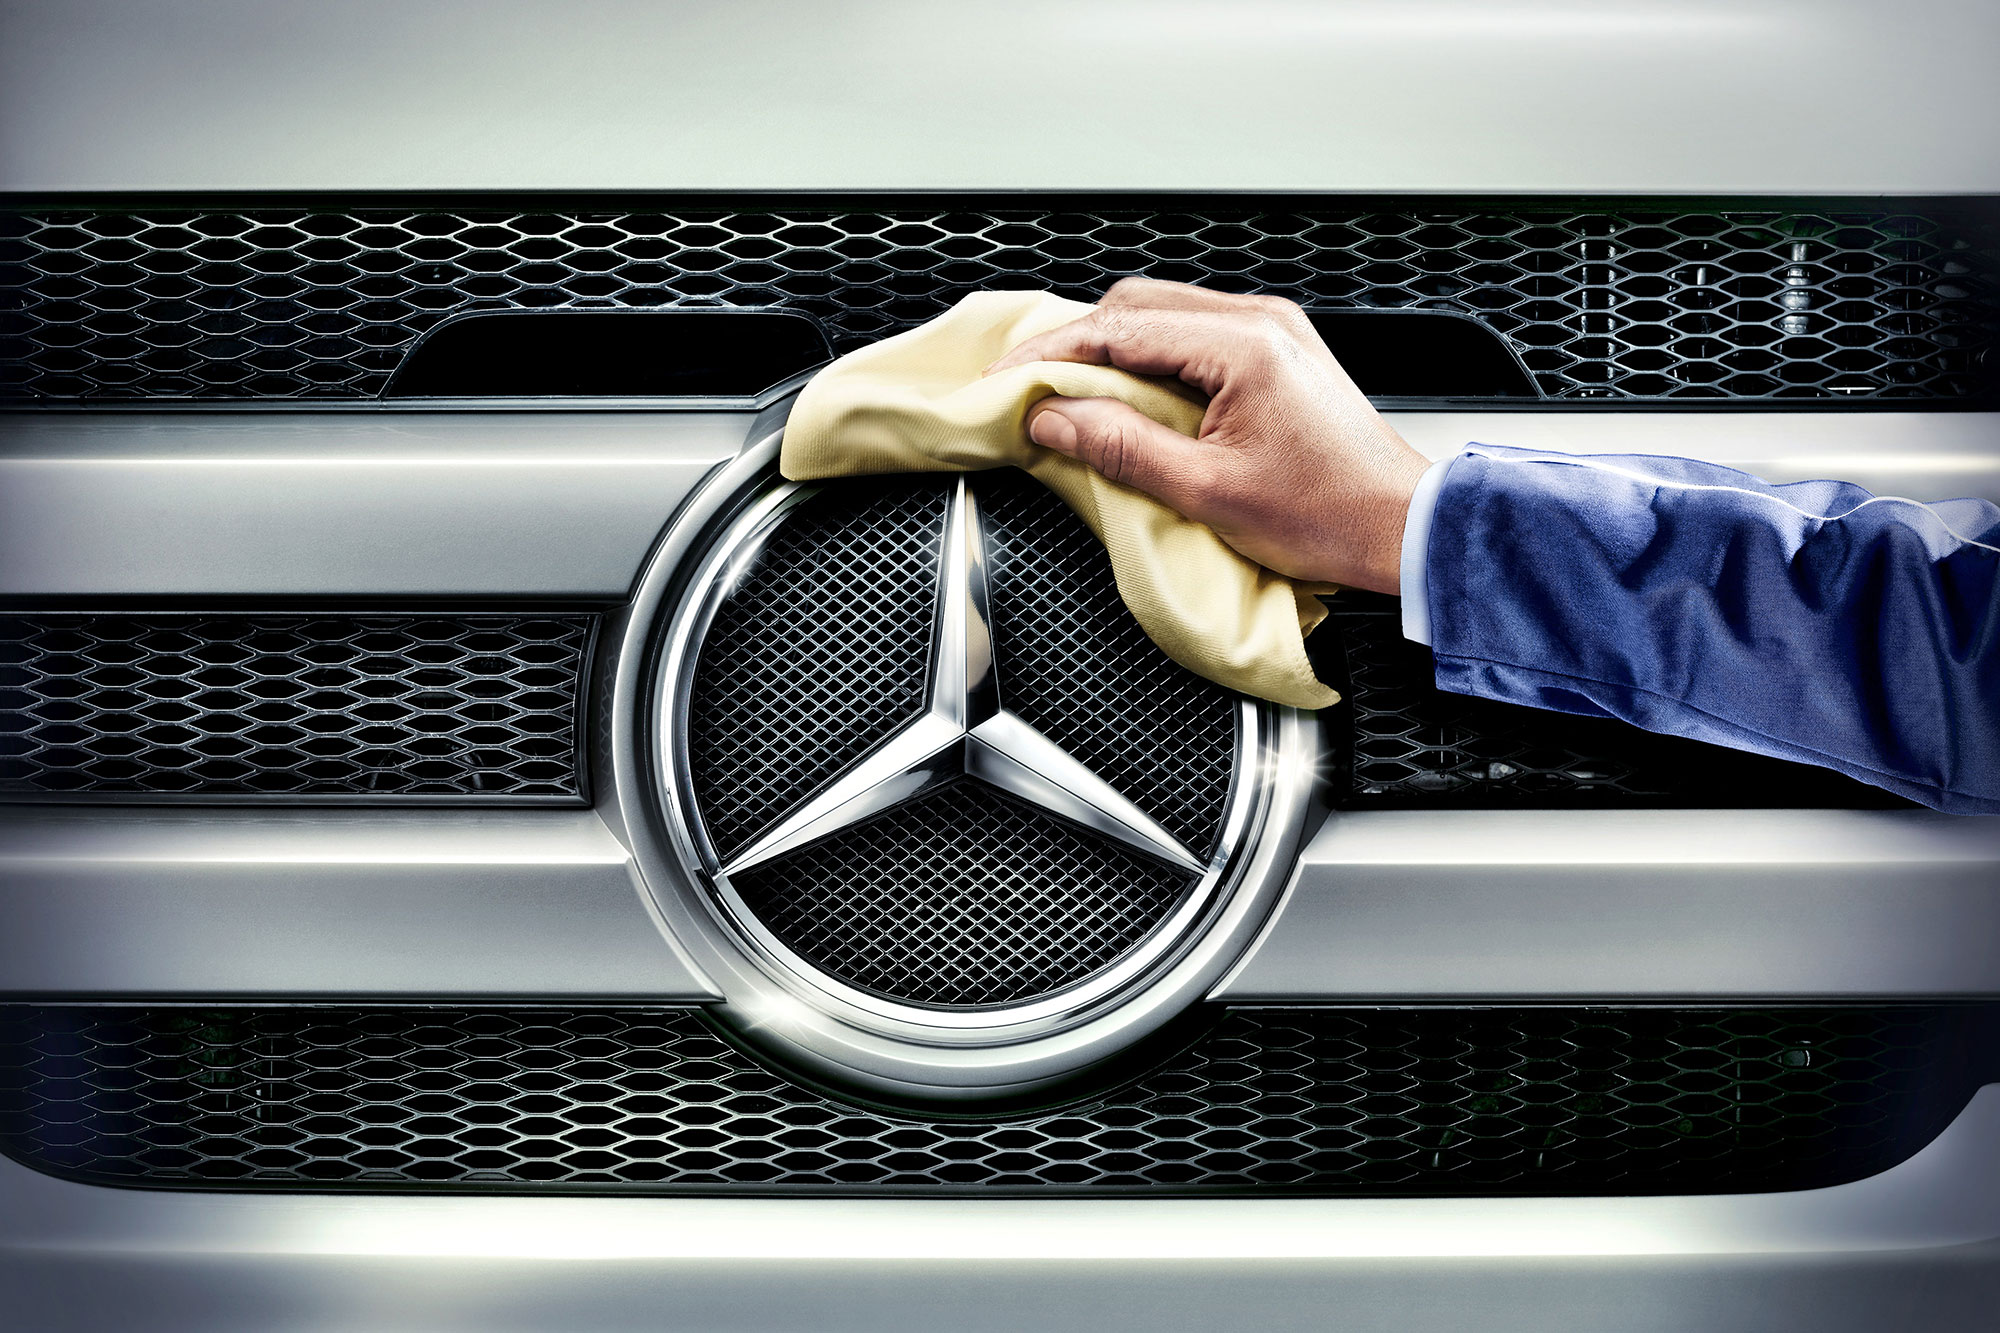 Advertising Mercedes Benz Services Sternputzer Glanzleistung Still life Idris Kolodziej